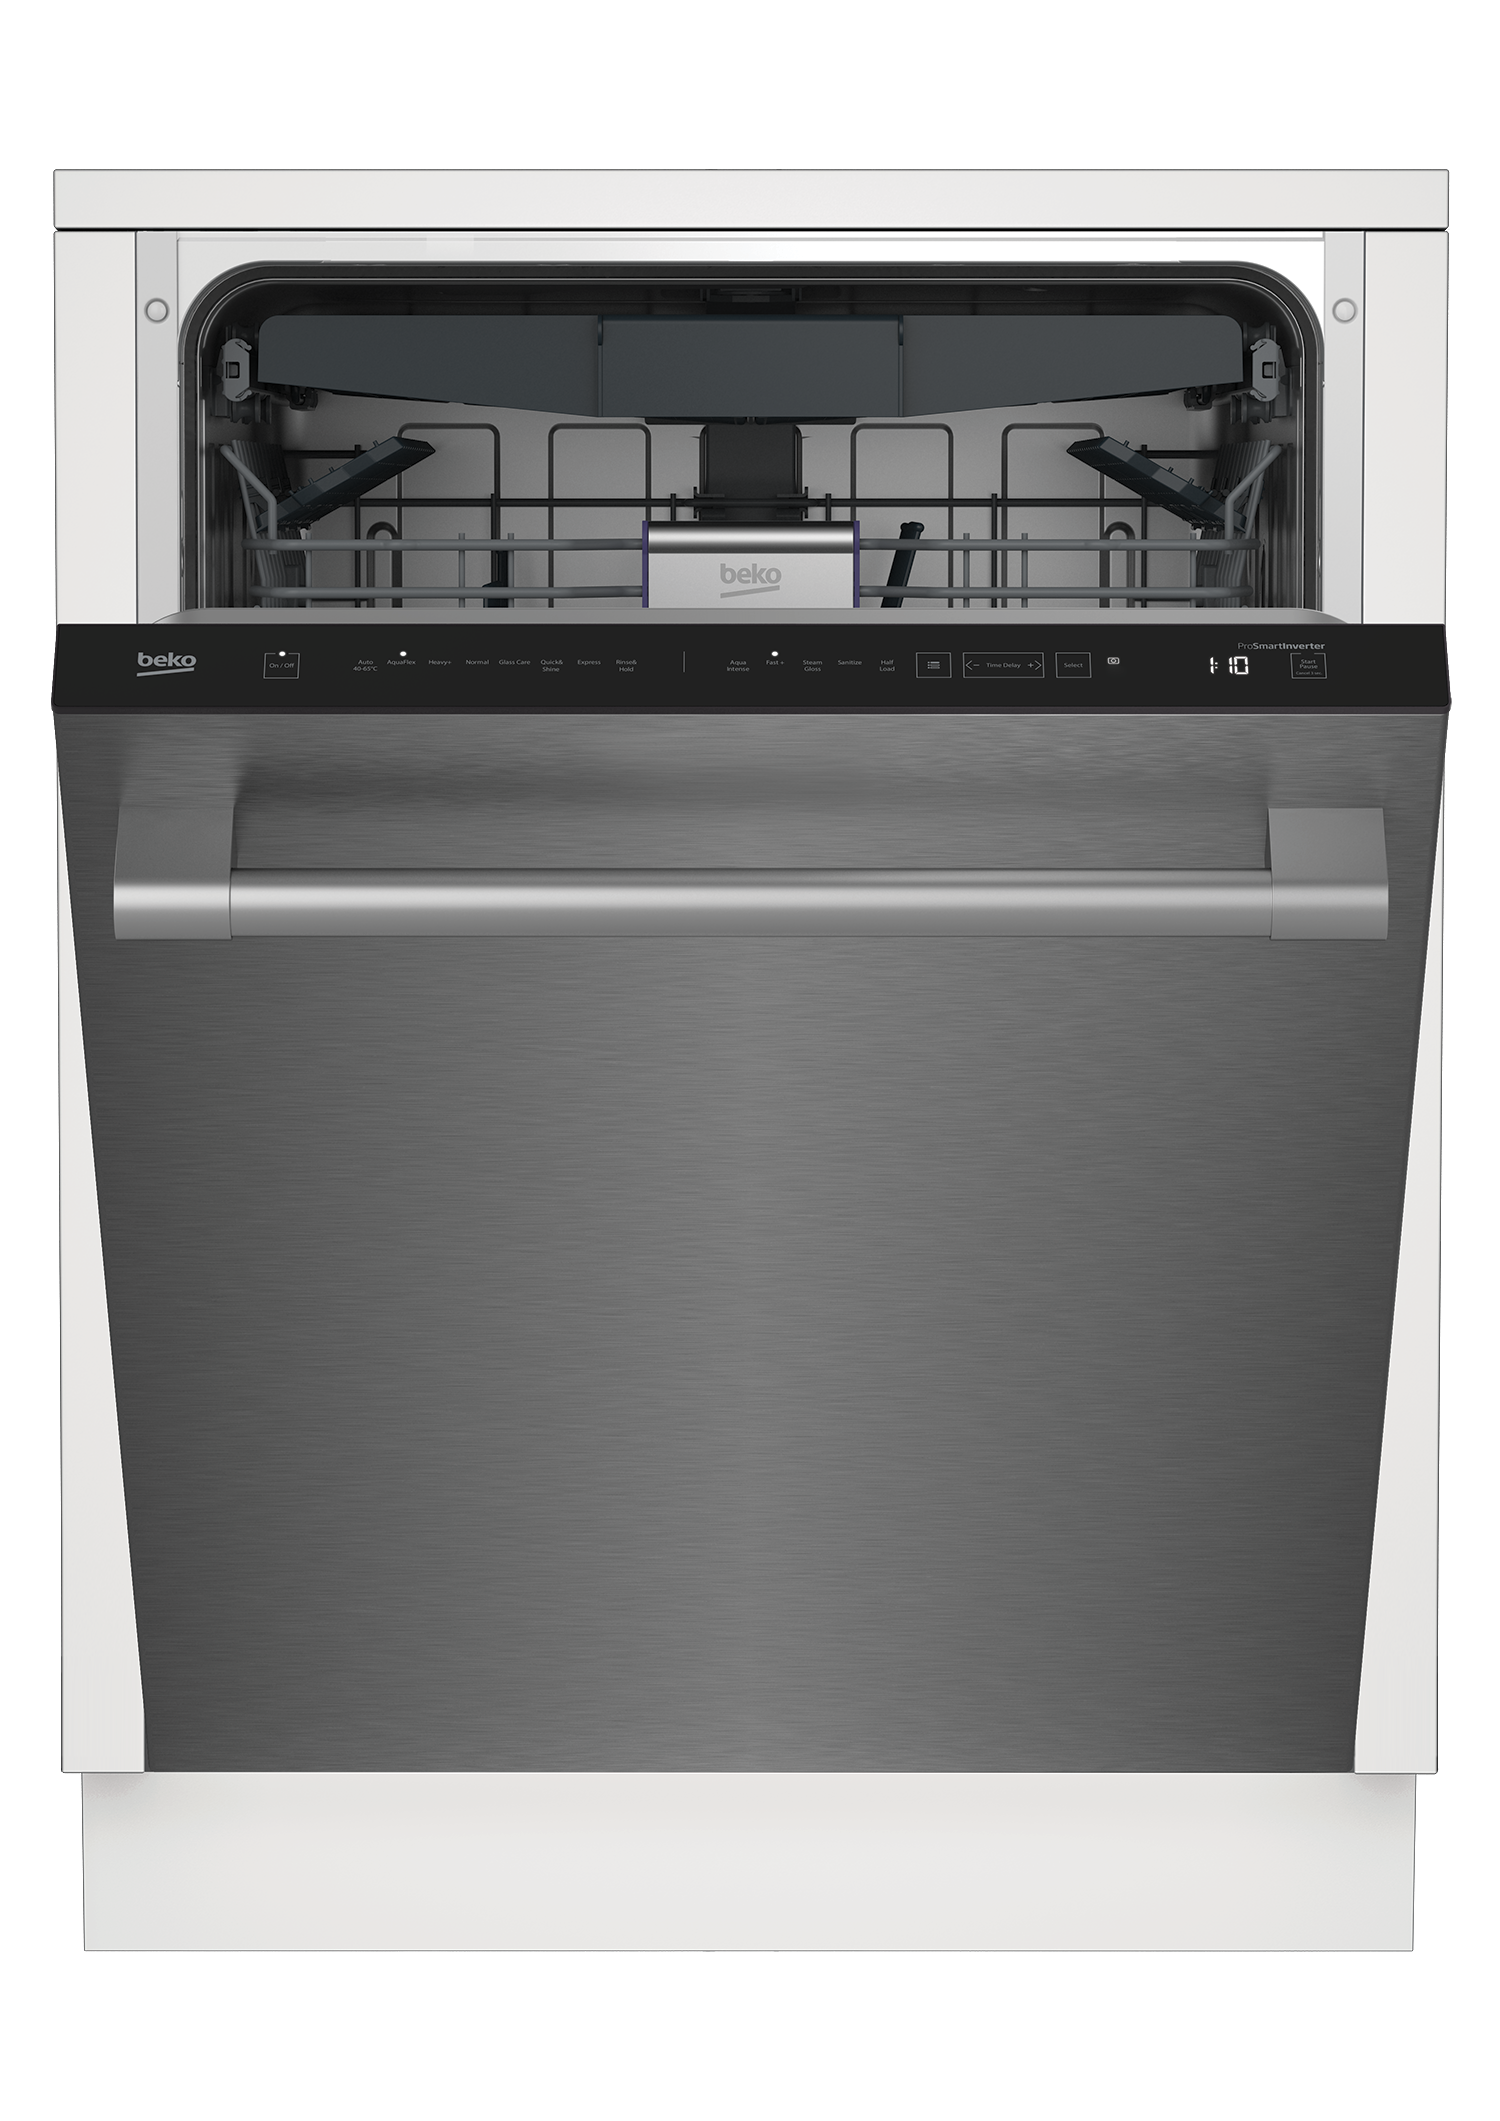 Tall Tub Stainless Dishwasher, 16 place settings, 45 dBa, Top Control DDT38530X